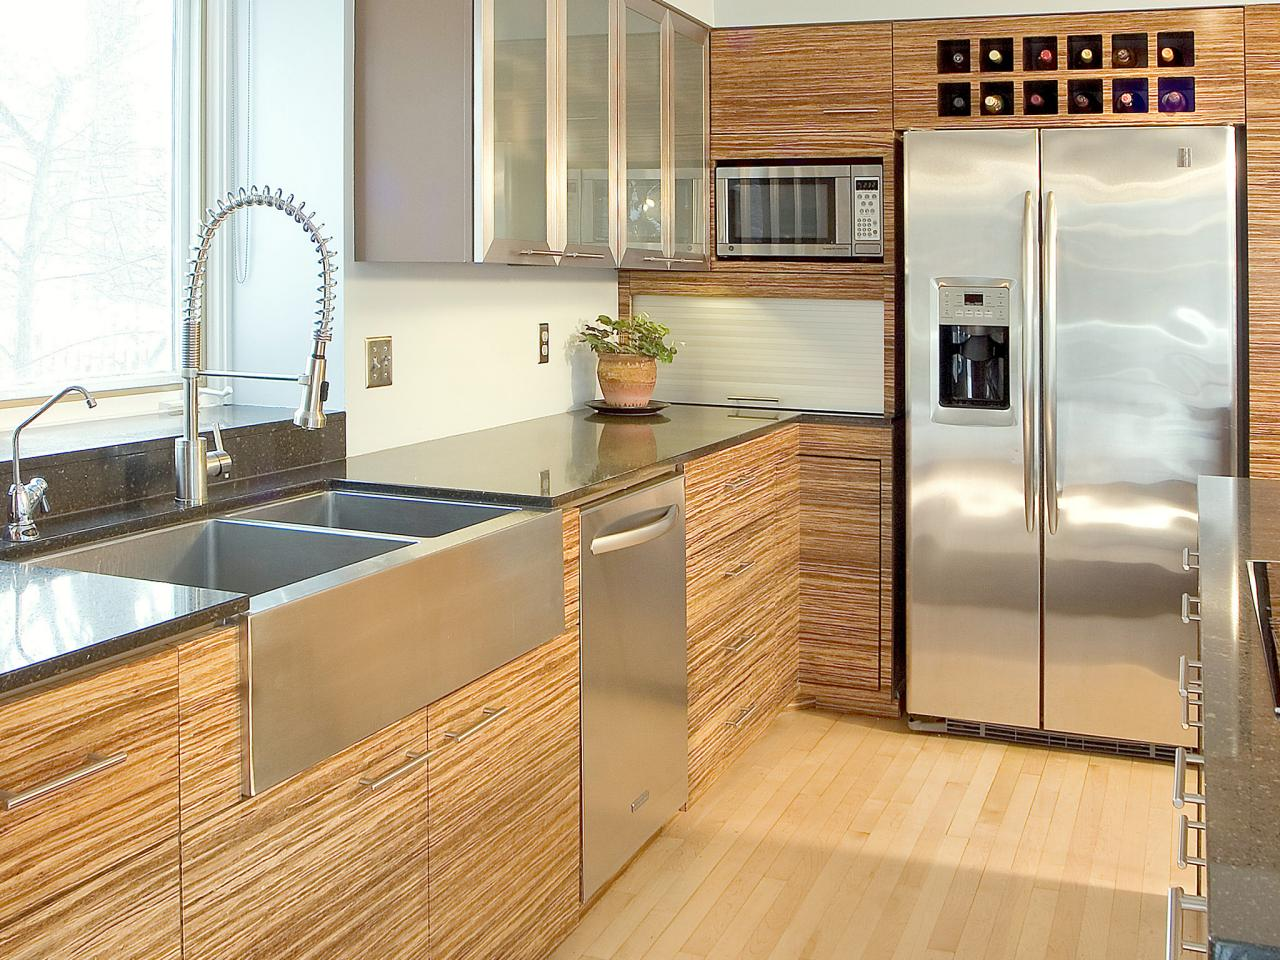 modern kitchen cabinets - Modern Wood Kitchen Cabinets